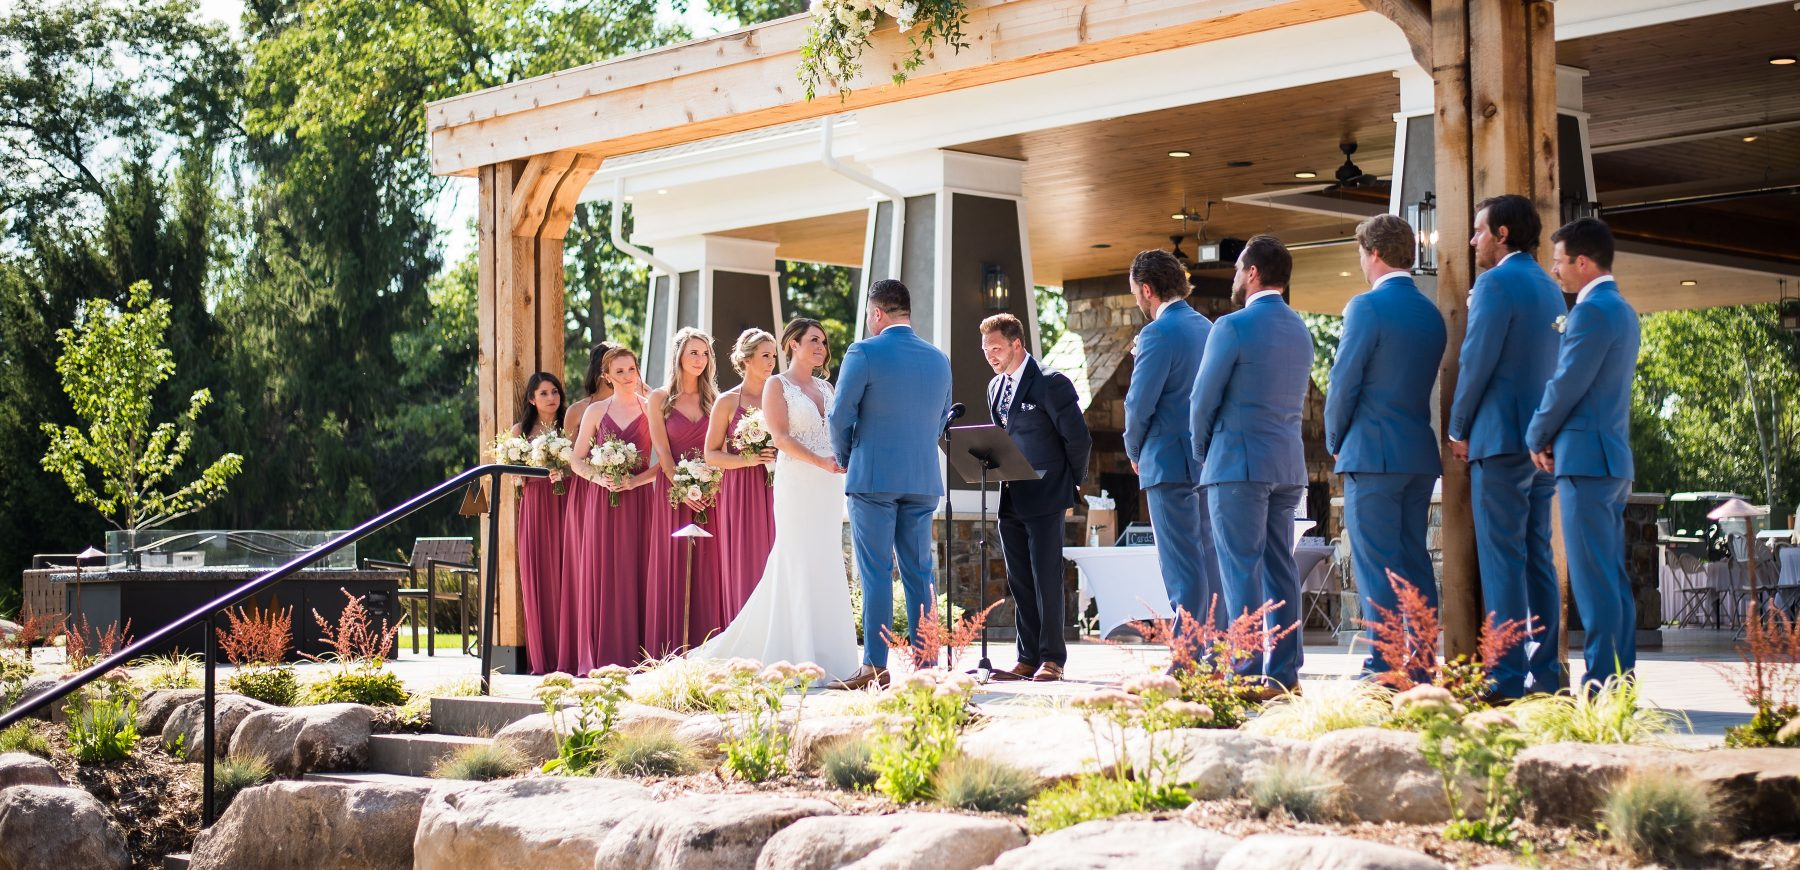 Bride and groom with their groomsmen and bridesmaids on the aisle at The Pavilion